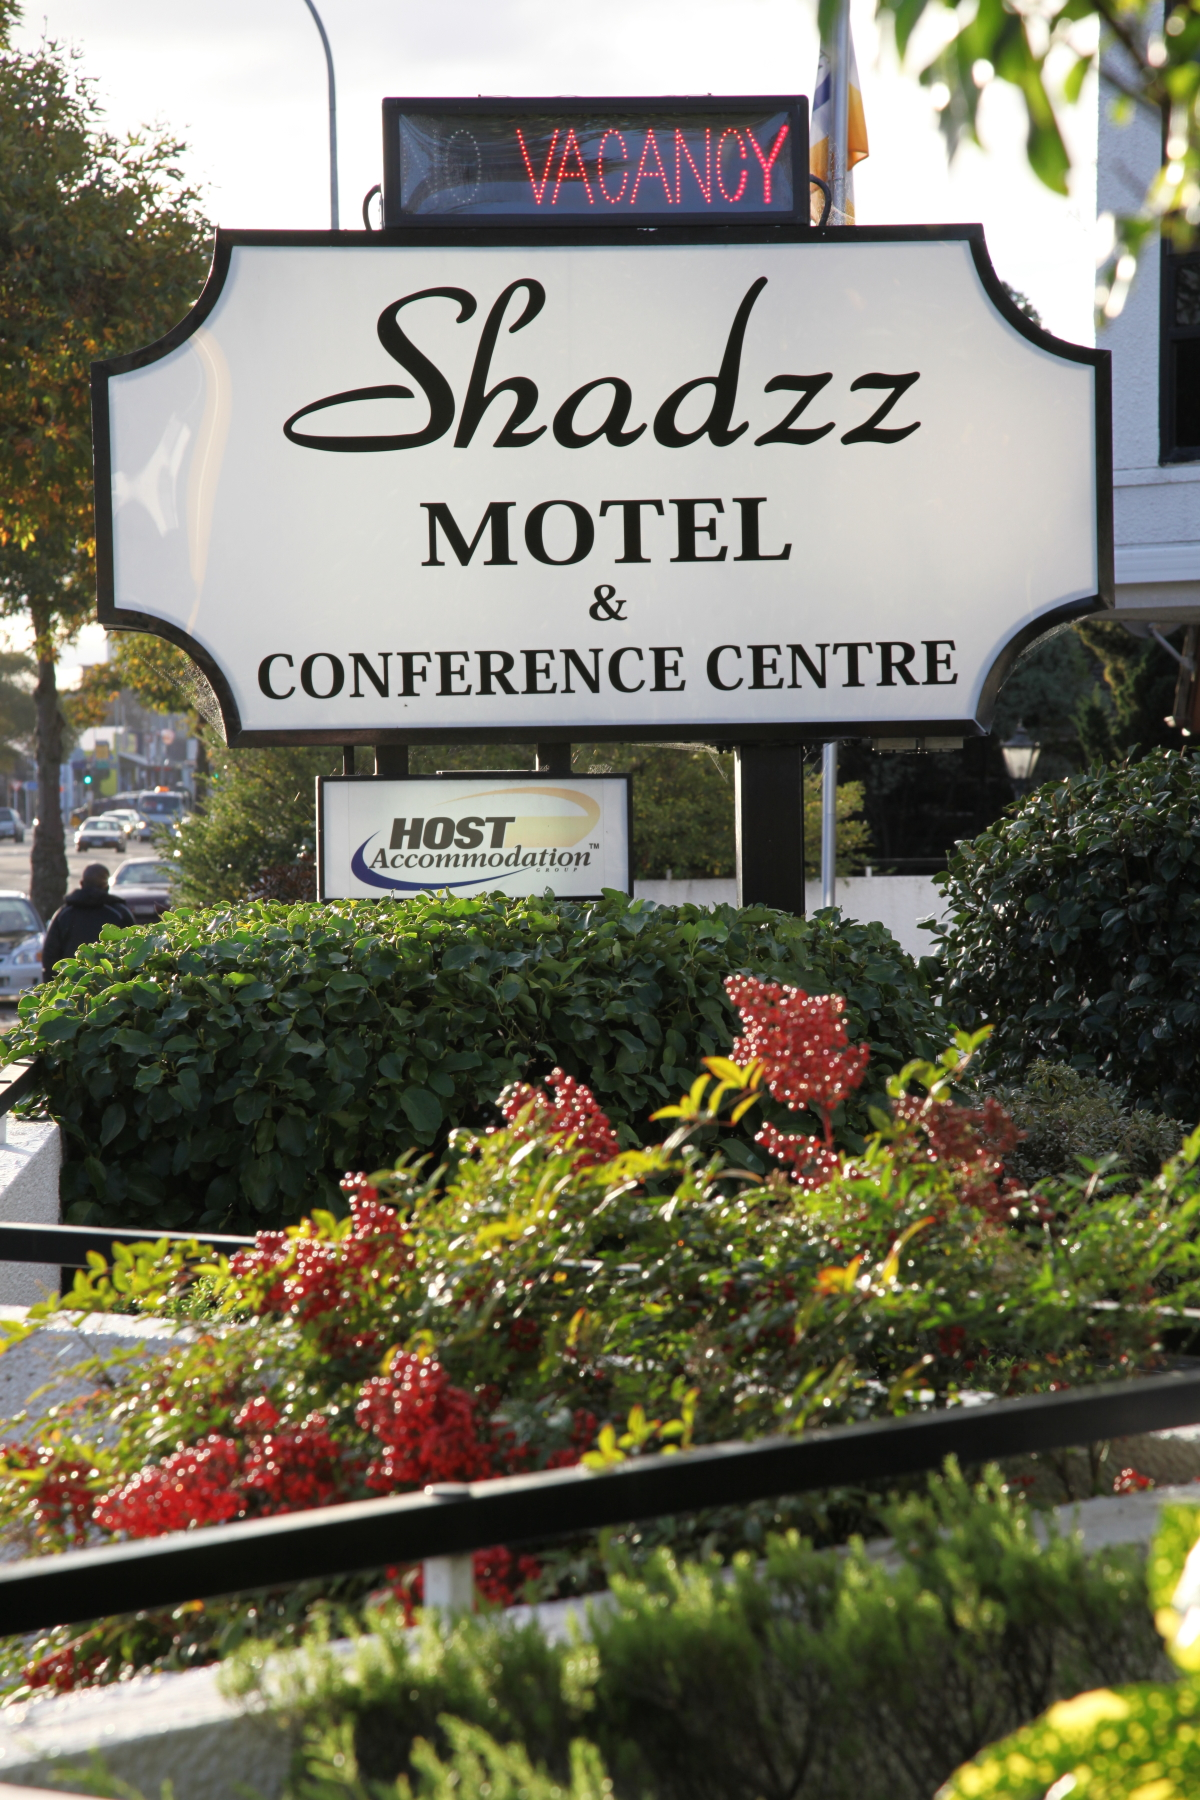 Shadzz Motel & Conference Centre